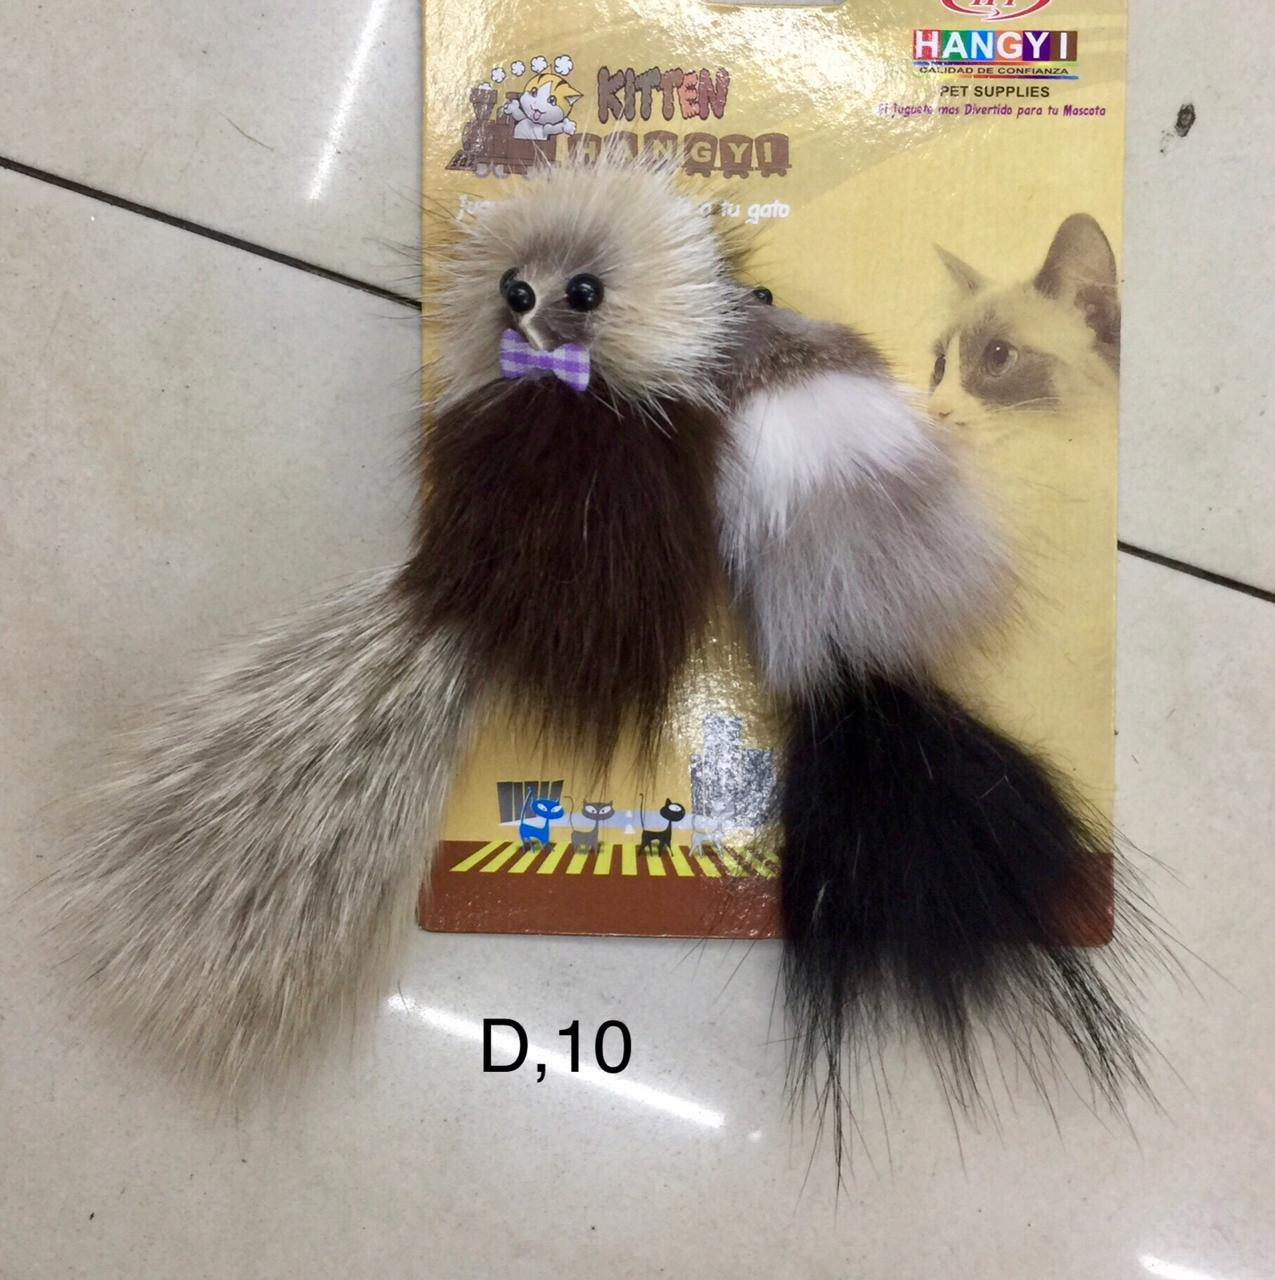 Toy Tripple Mouse For Cats And Kittens - Pet Accessories - Pet Store - Pet supplies